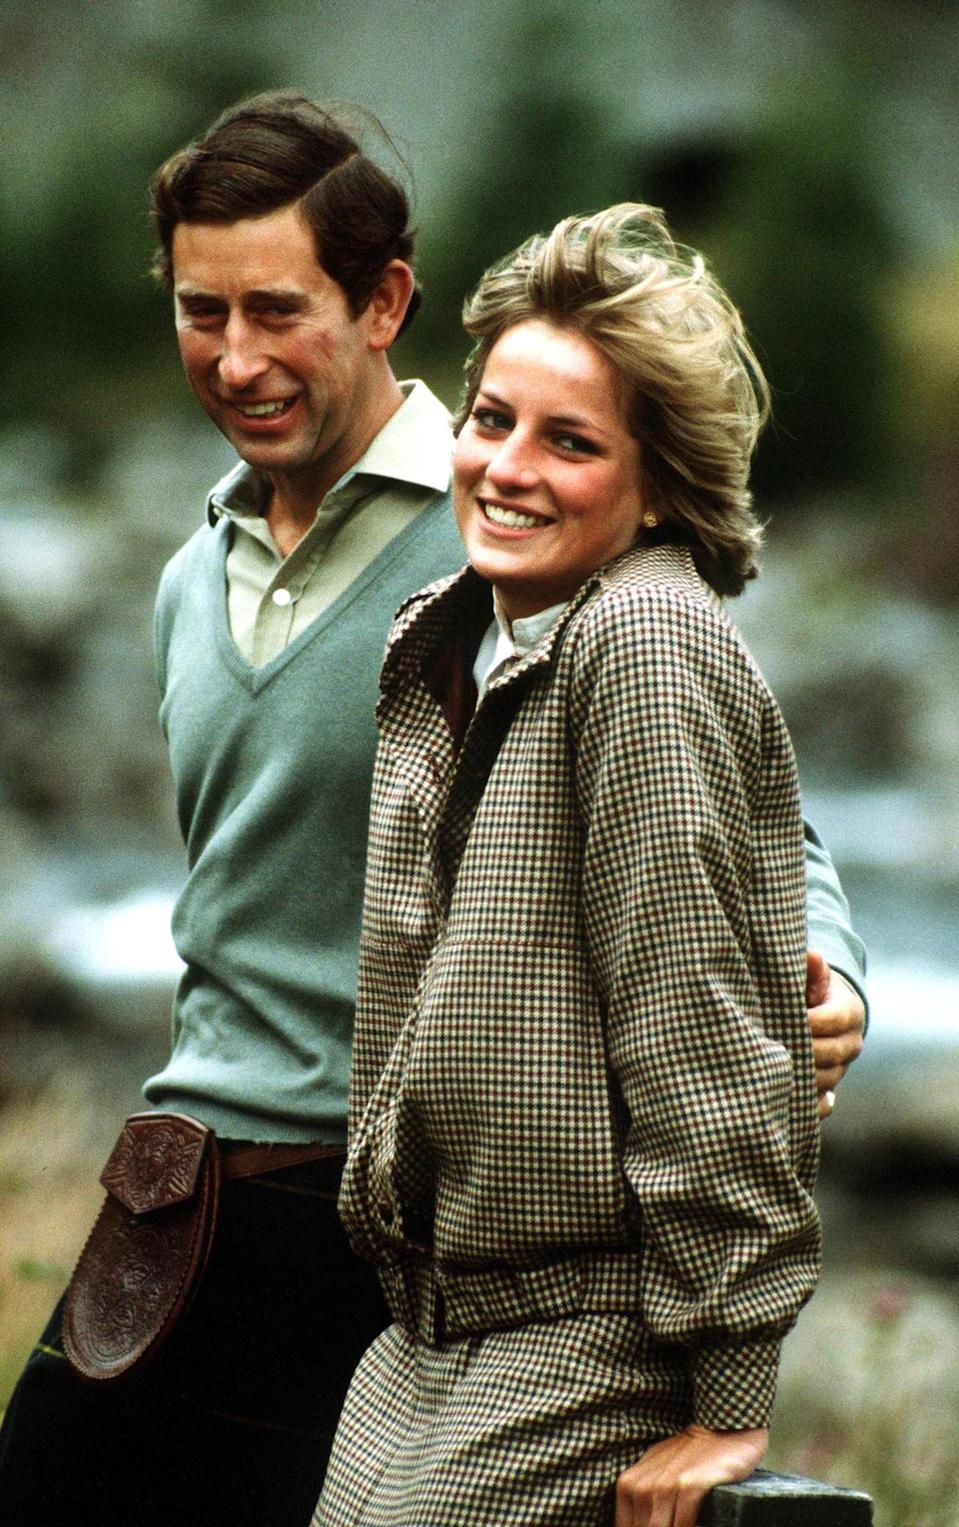 The Prince and Princess of Wales stand by the River Dee on the Balmoral estate during their honeymoon in Scotland, September 1981. The Princess wears a suit by Bill Pashley. (Photo by Jayne Fincher/Princess Diana Archive/Getty Images)